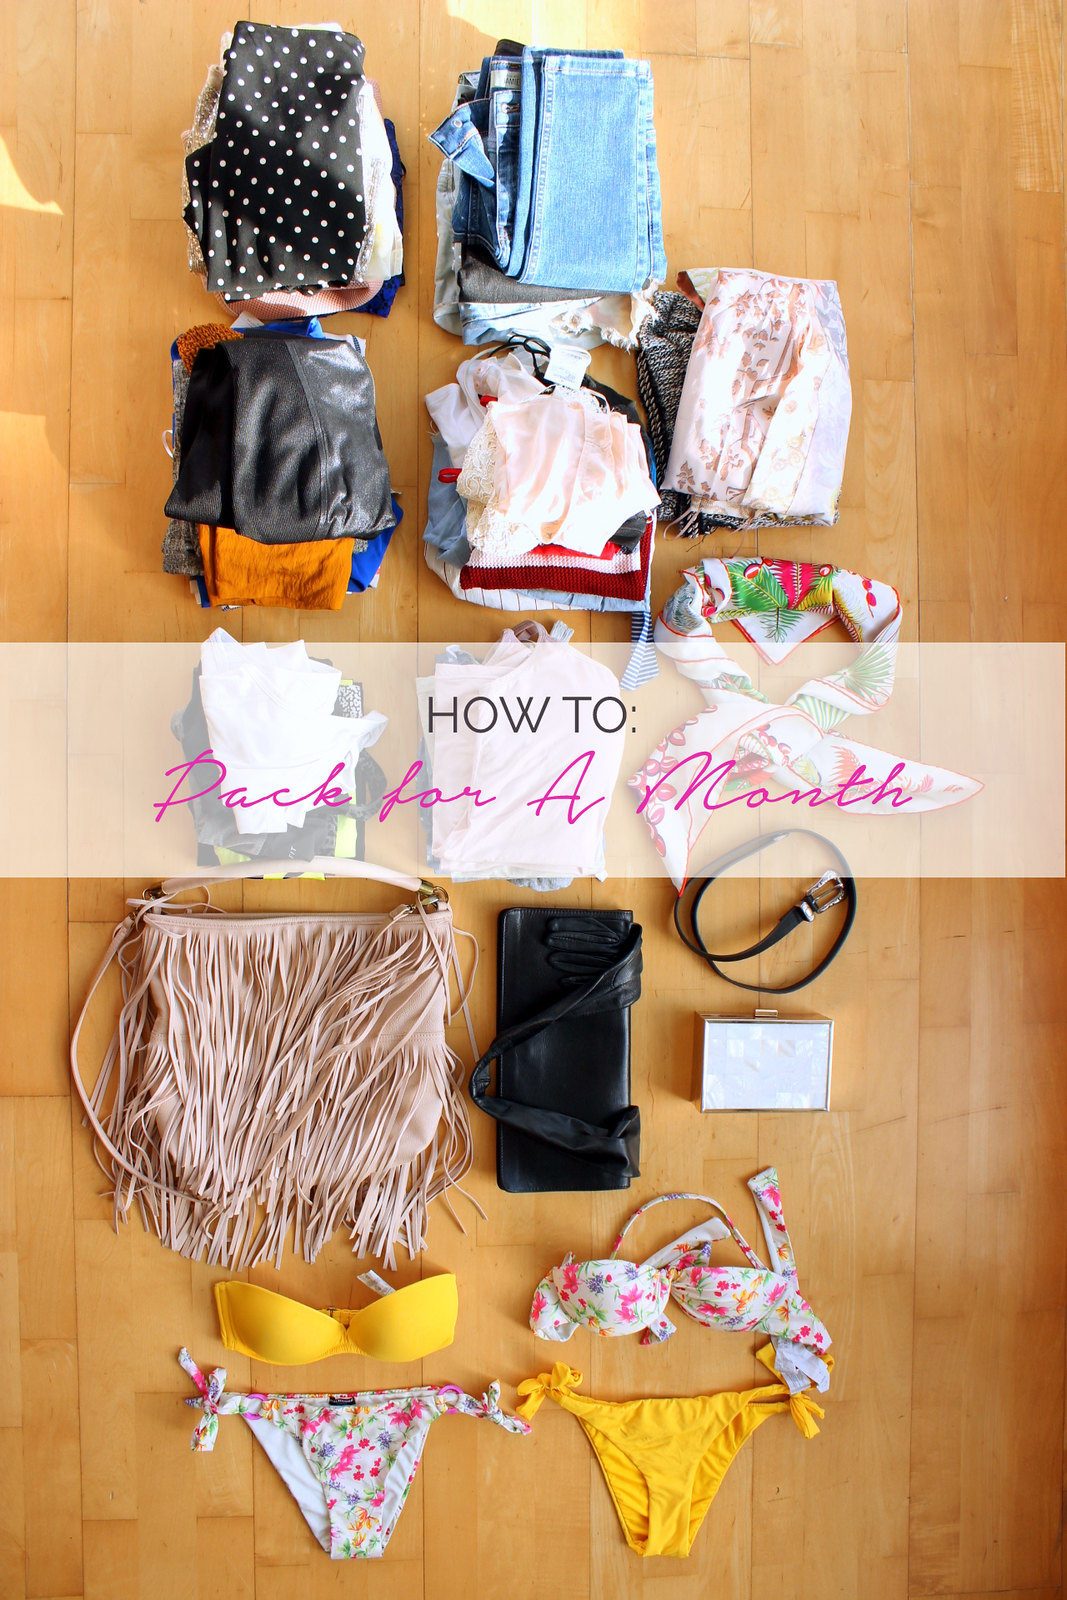 How to Pack for A Month